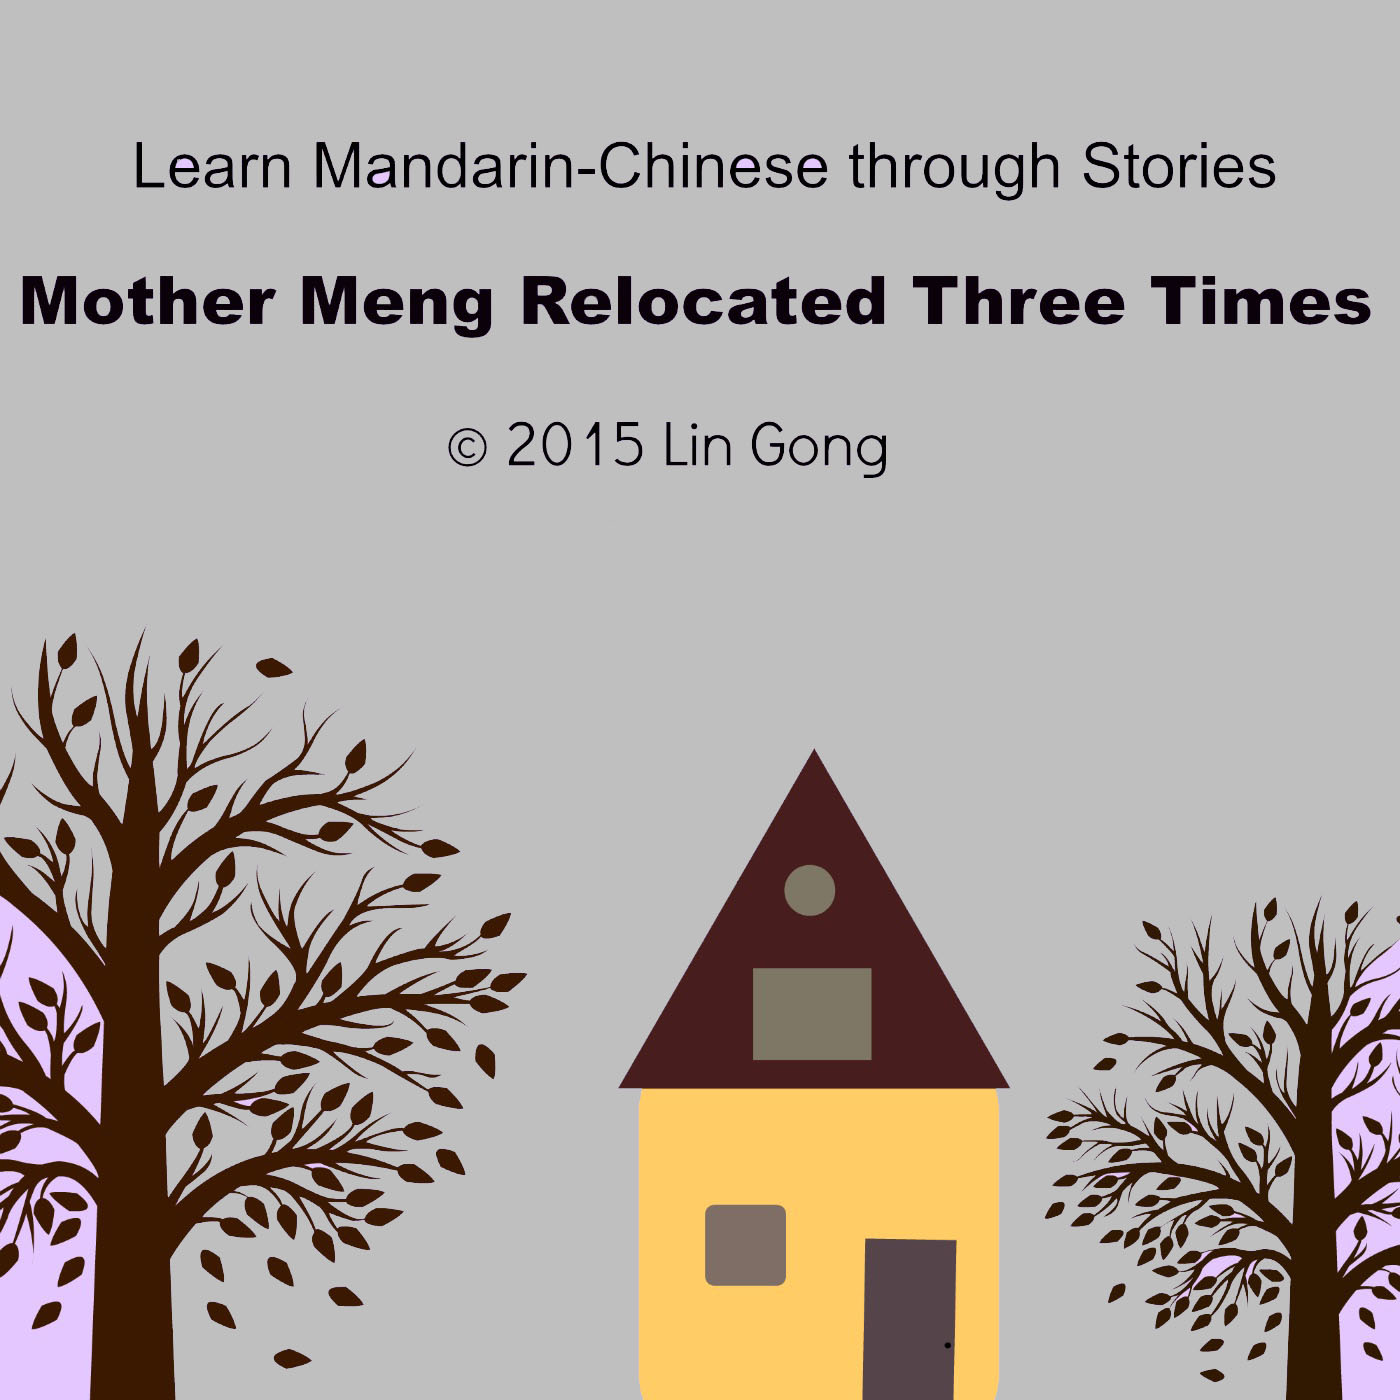 Mother Meng relocated three times